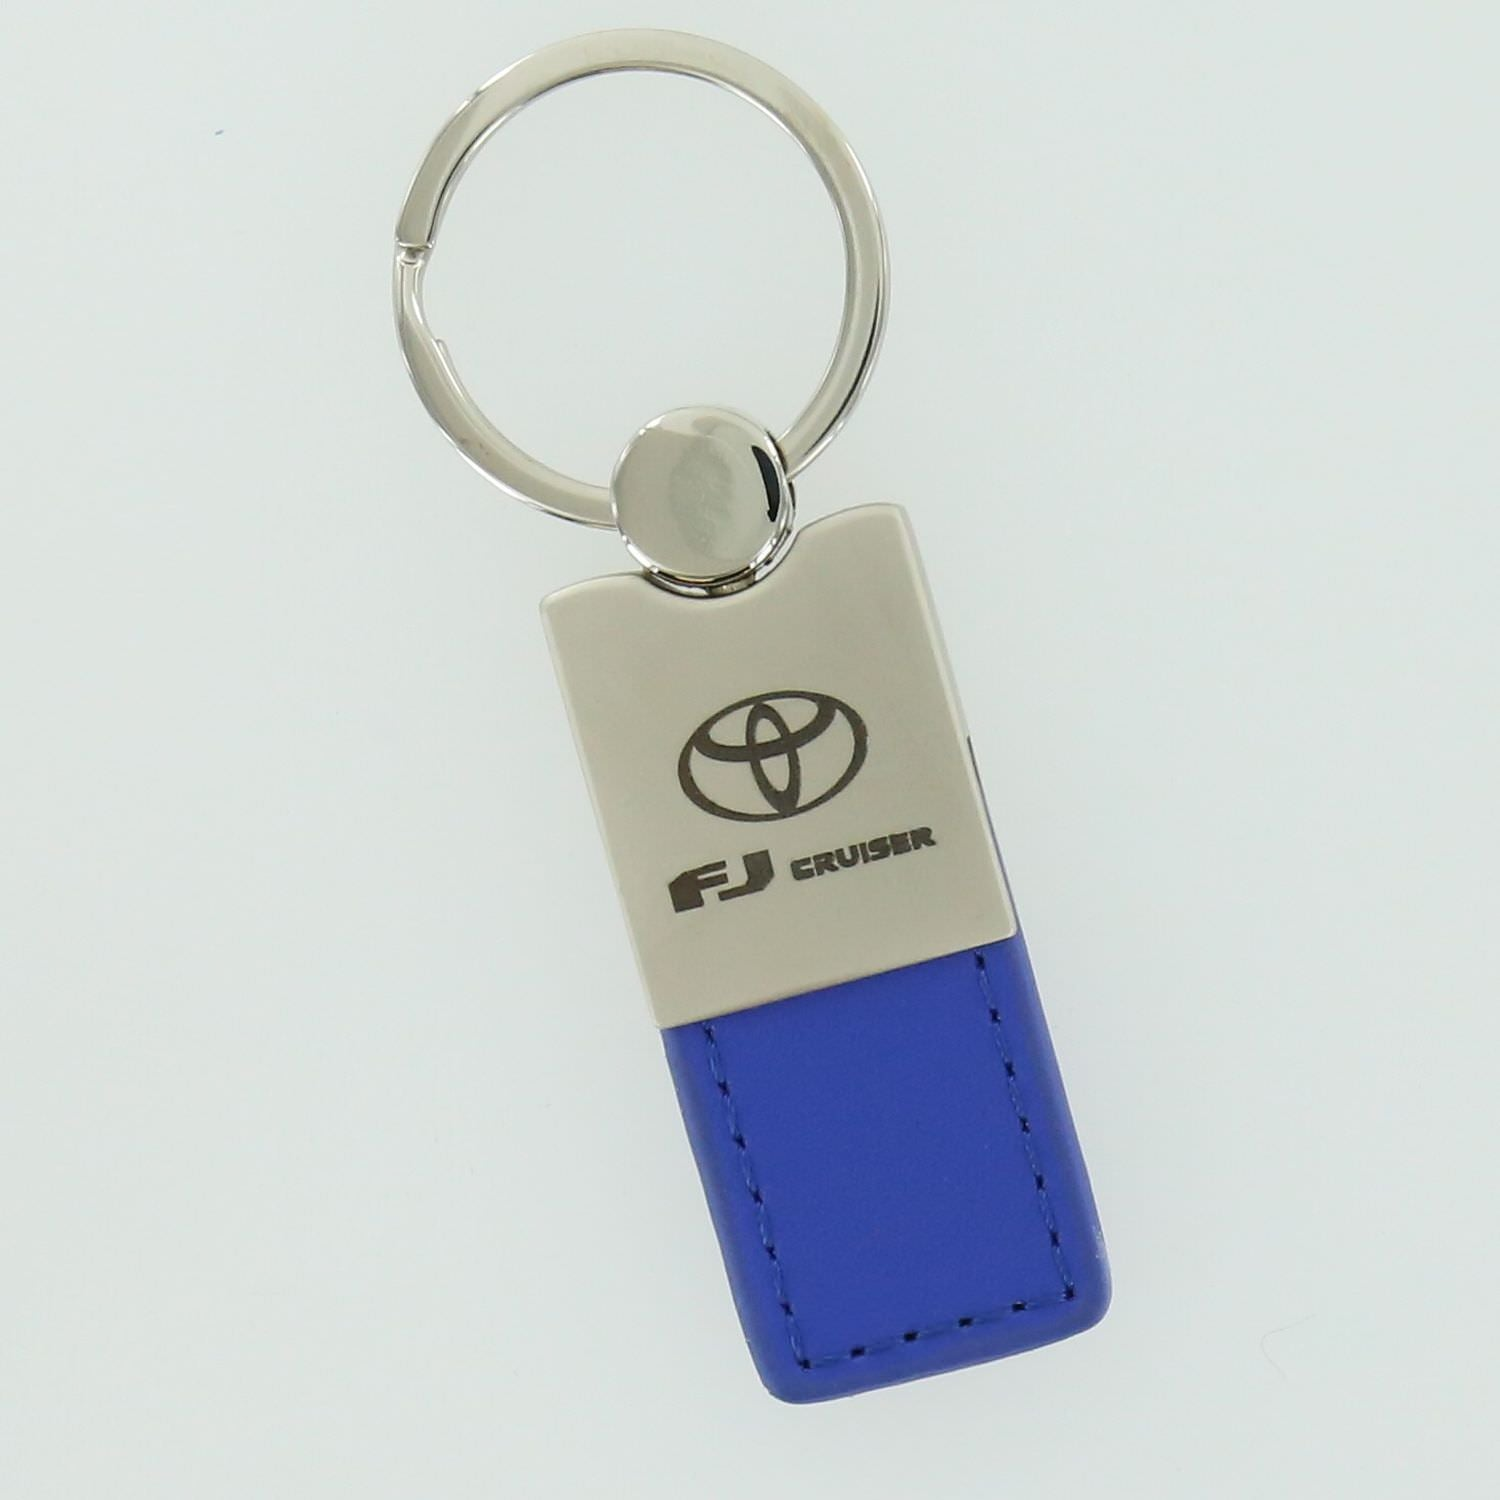 Toyota FJ Cruiser Key Chain